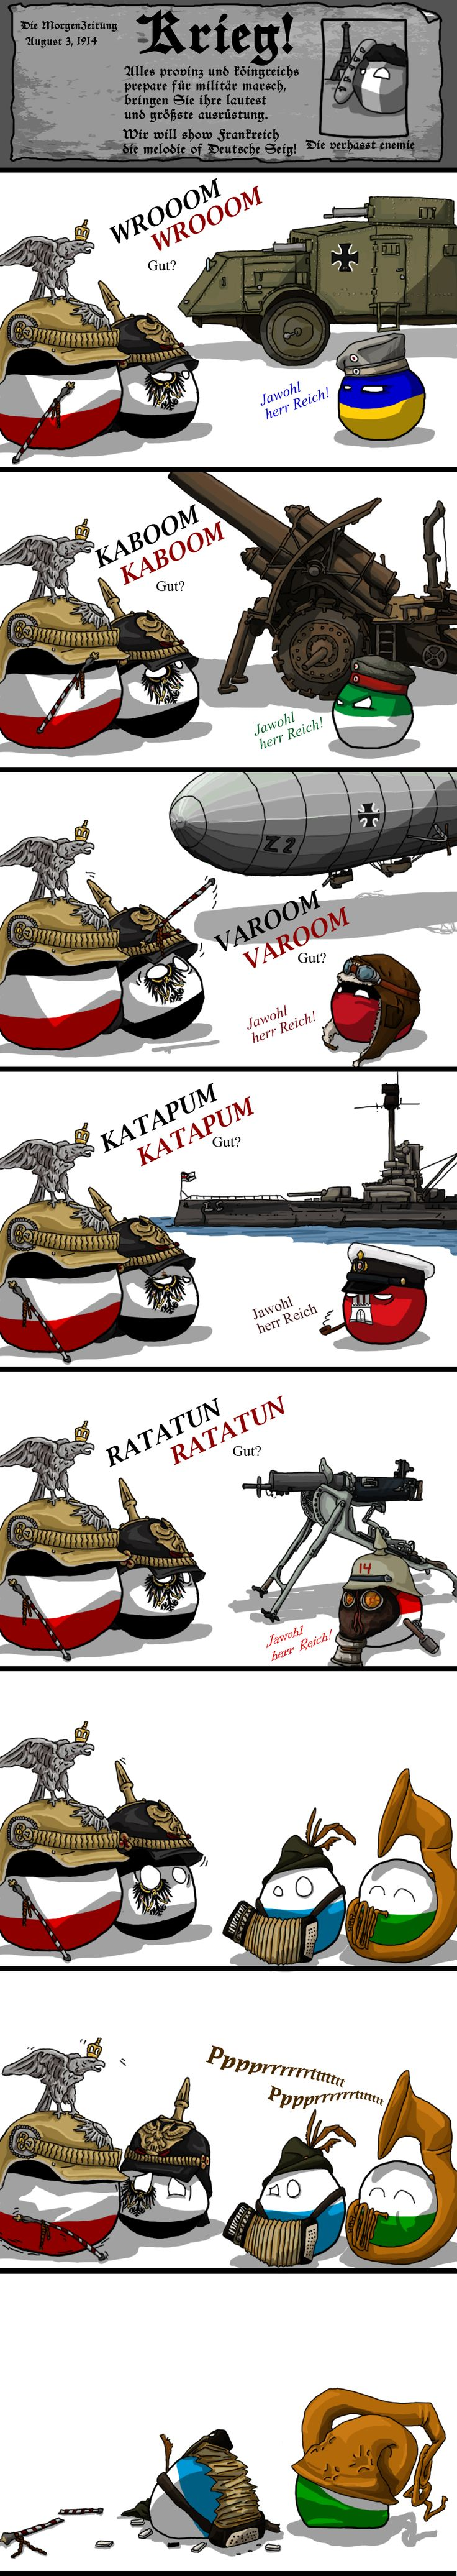 The melody of german victory. (Germany) by yaddar  #polandball #countryball